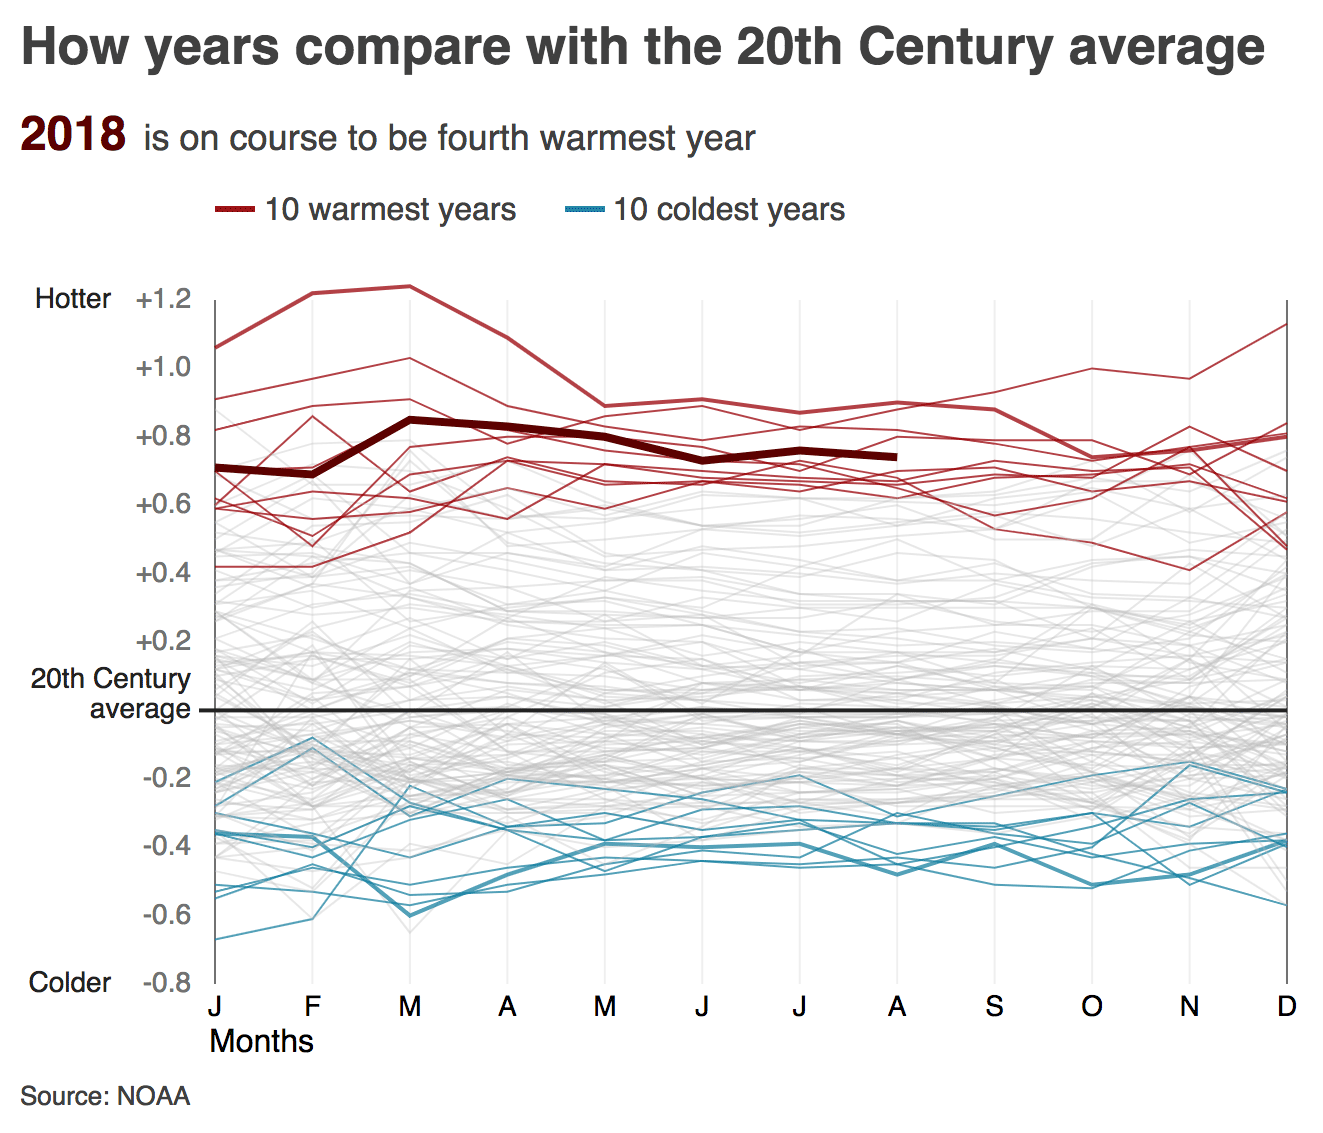 Animated chart showing that most of the coldest 10 years compared to the 20th century average were in the early 1900s, while the warmest years have all been since 2000, with 2018 on course to be the fourth warmest year on record